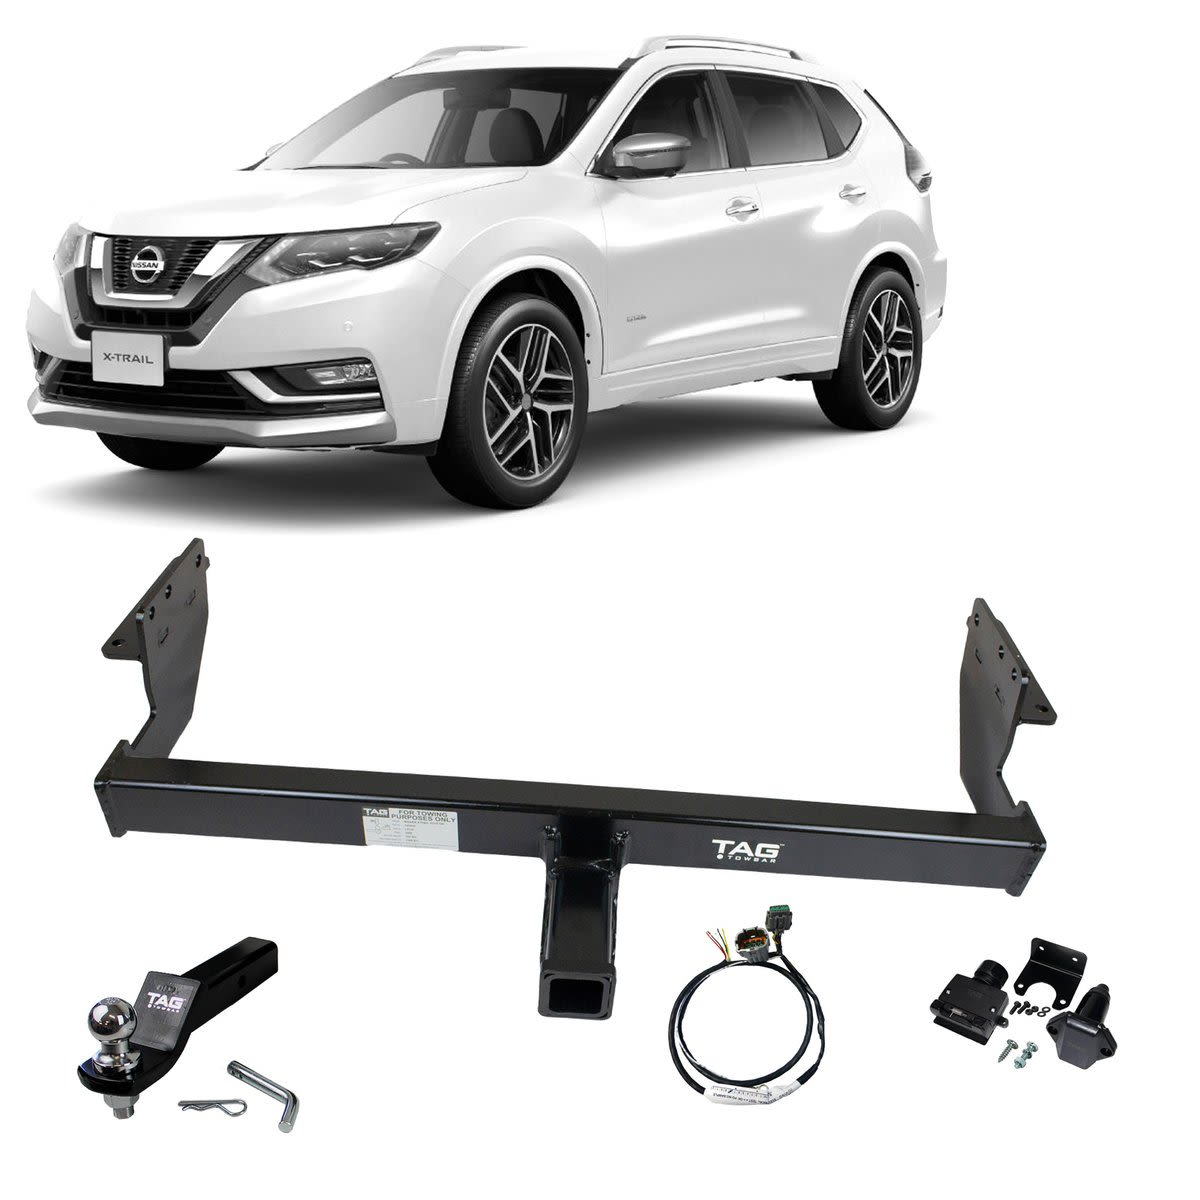 TAG Heavy Duty Towbar to suit Nissan X-TRAIL (12/2013 - on) - Direct Fit Digital Wiring Harness